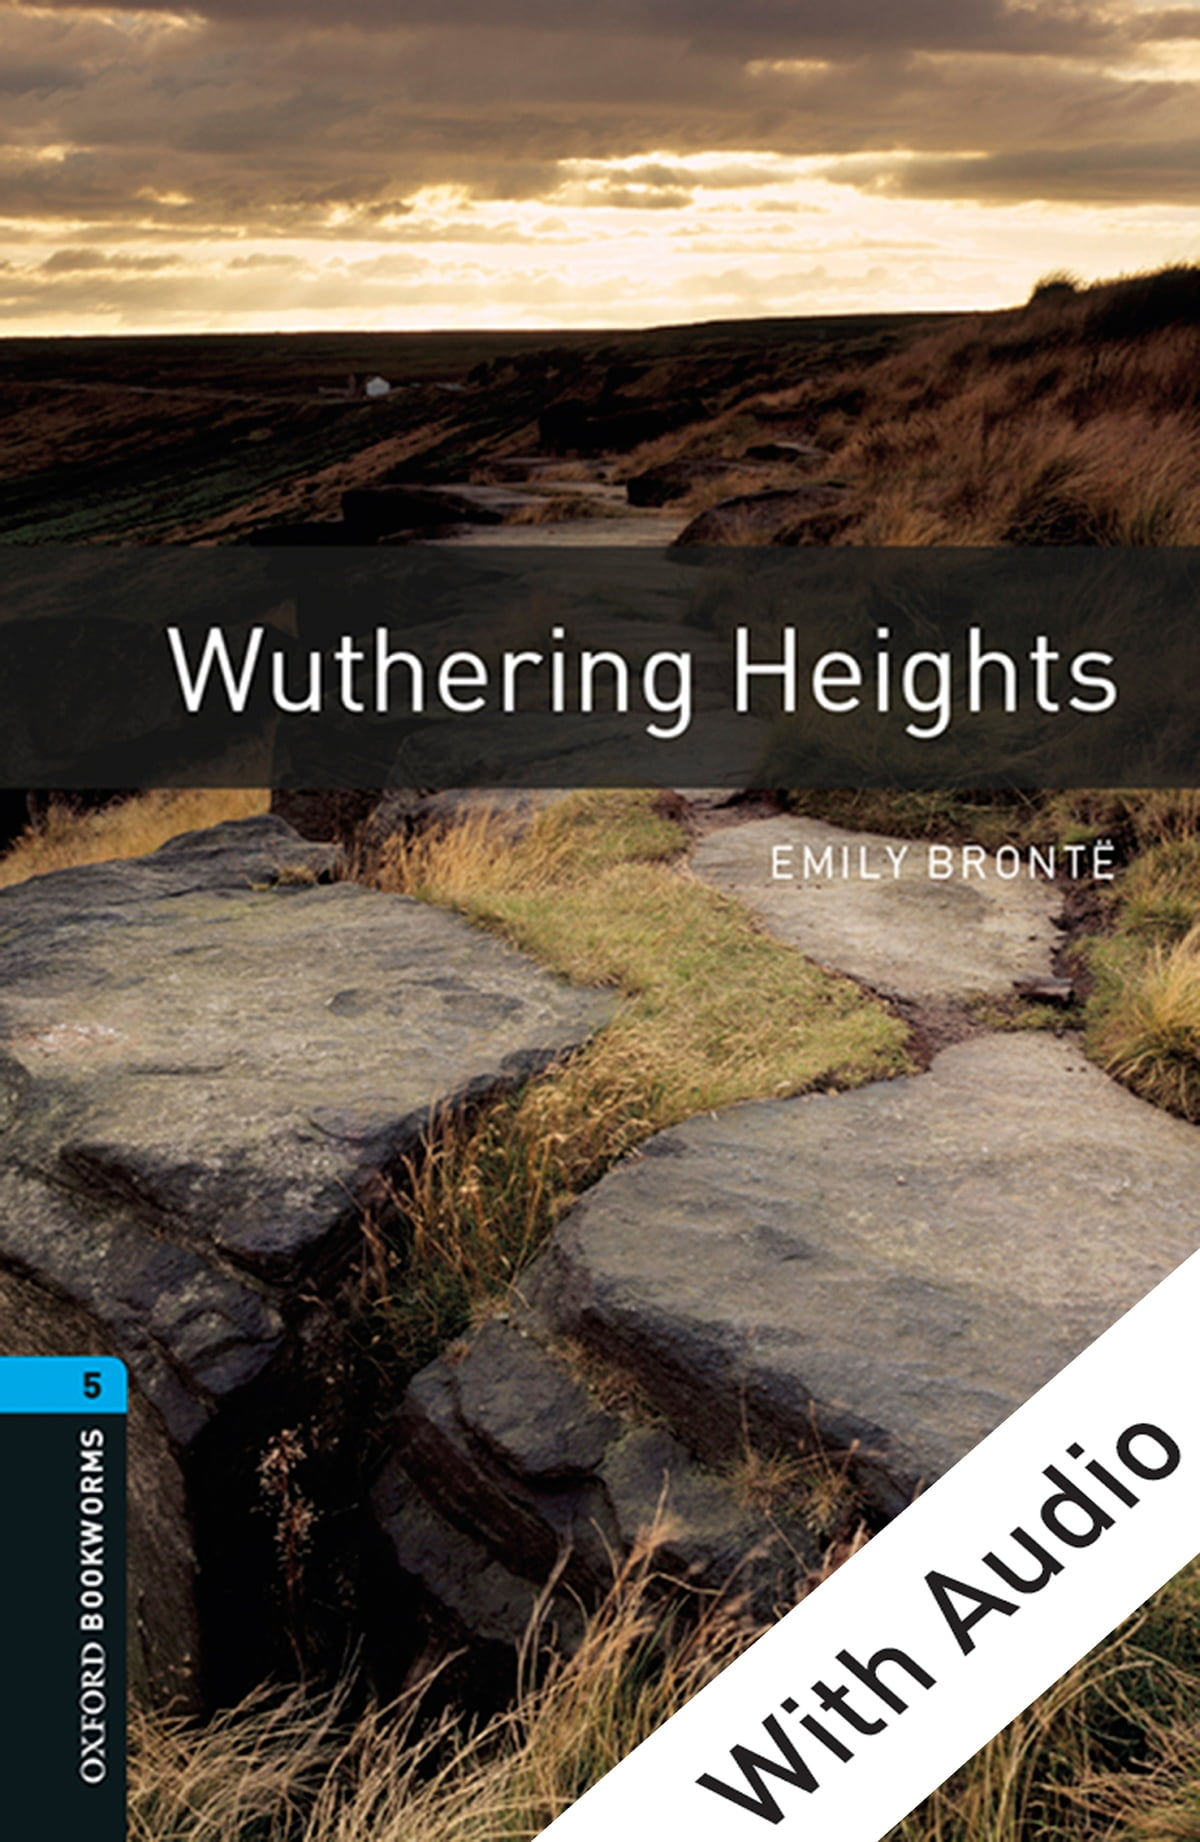 Oxford Bookworms Library Wuthering Heights With Audio Level 5 Oxford Bookworms